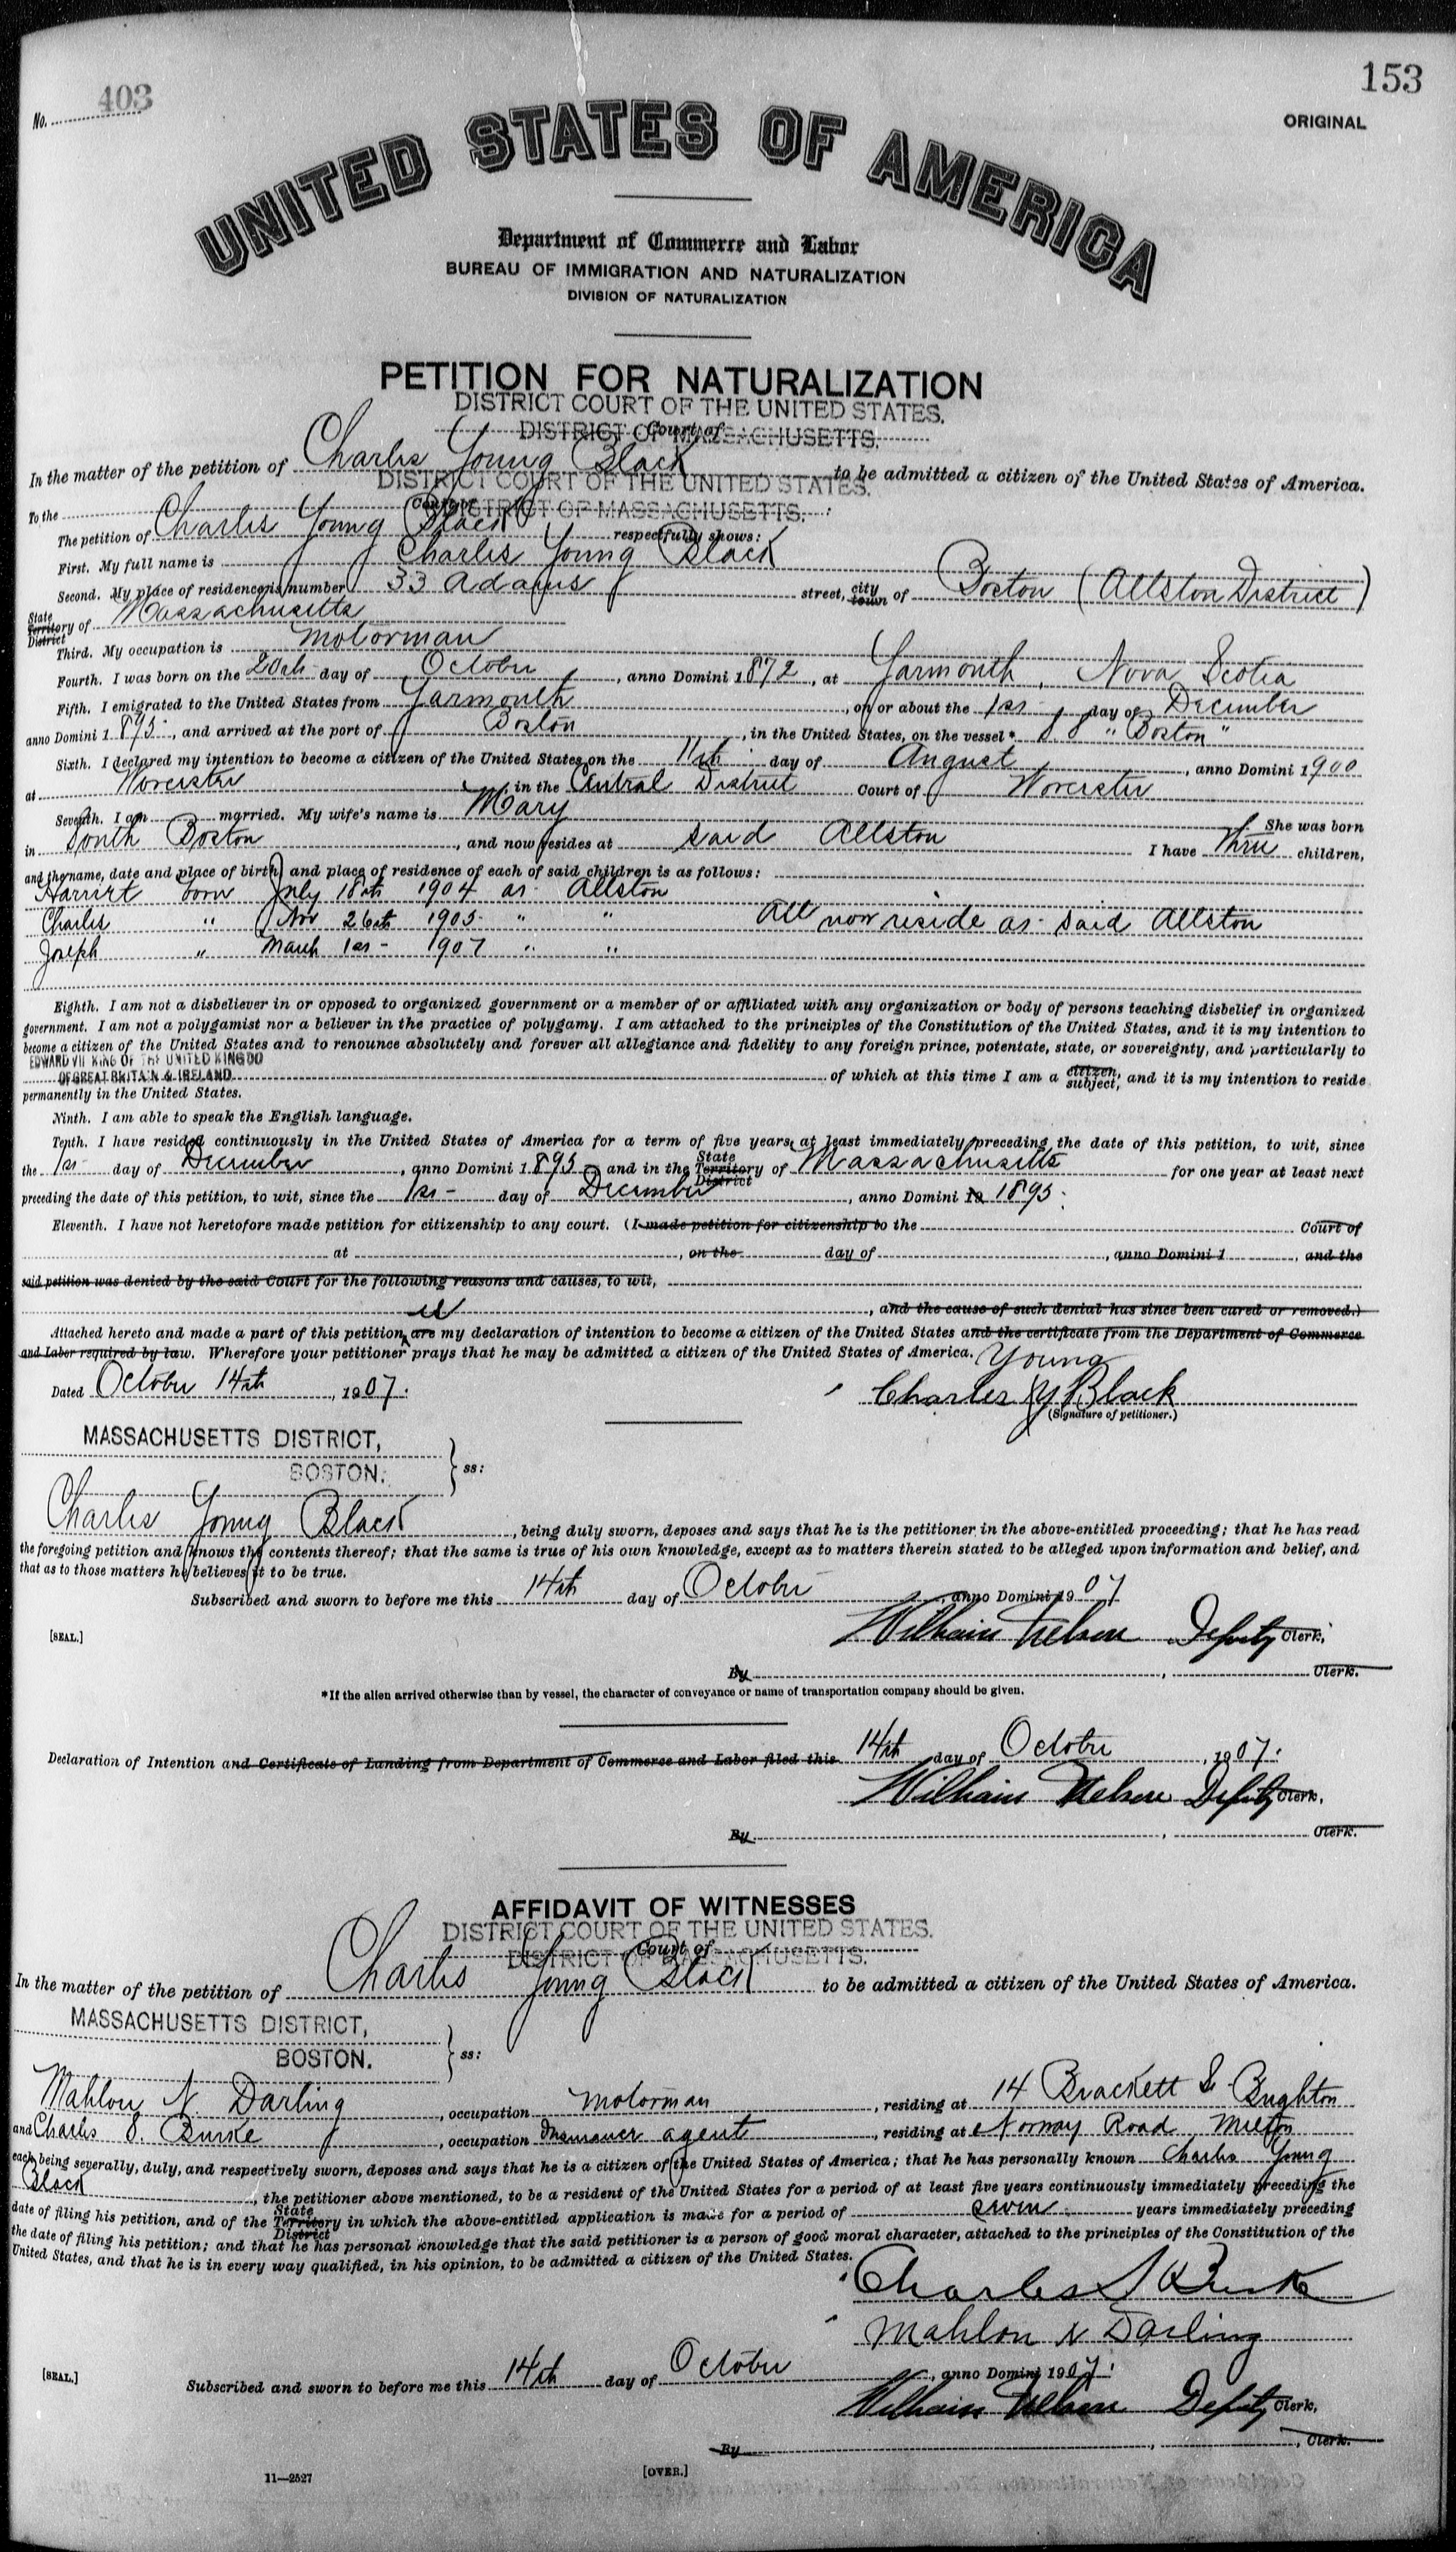 Petition for Naturalization of Charles Young Black